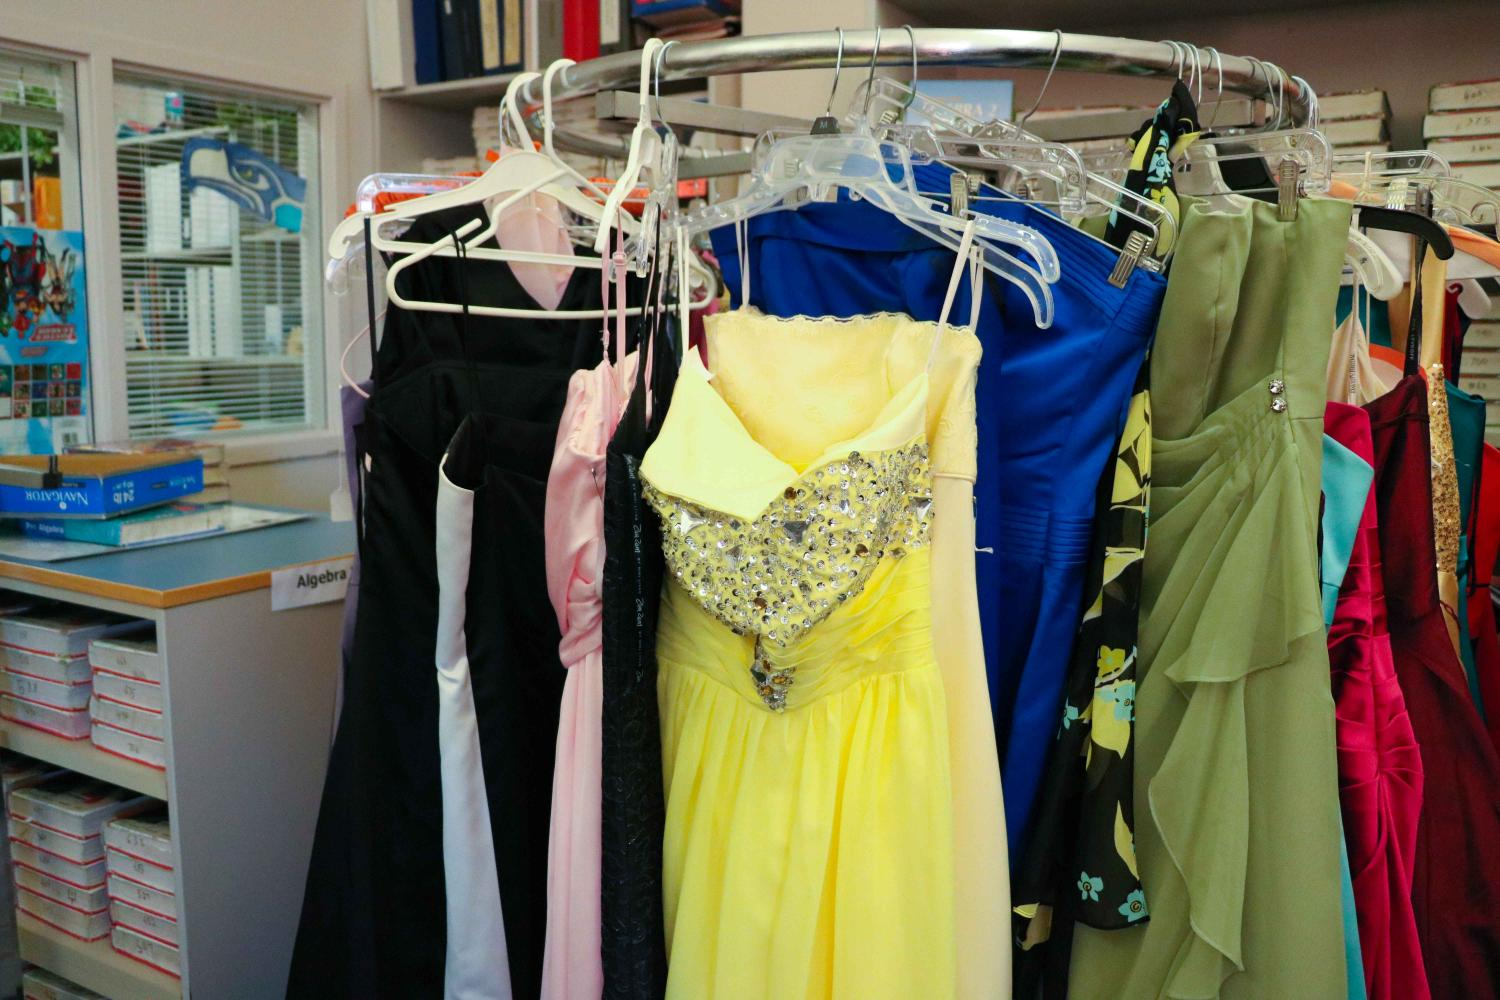 A rack of the free prom dresses available for students in the Fines Office, which were donated by families during Glamour Day.